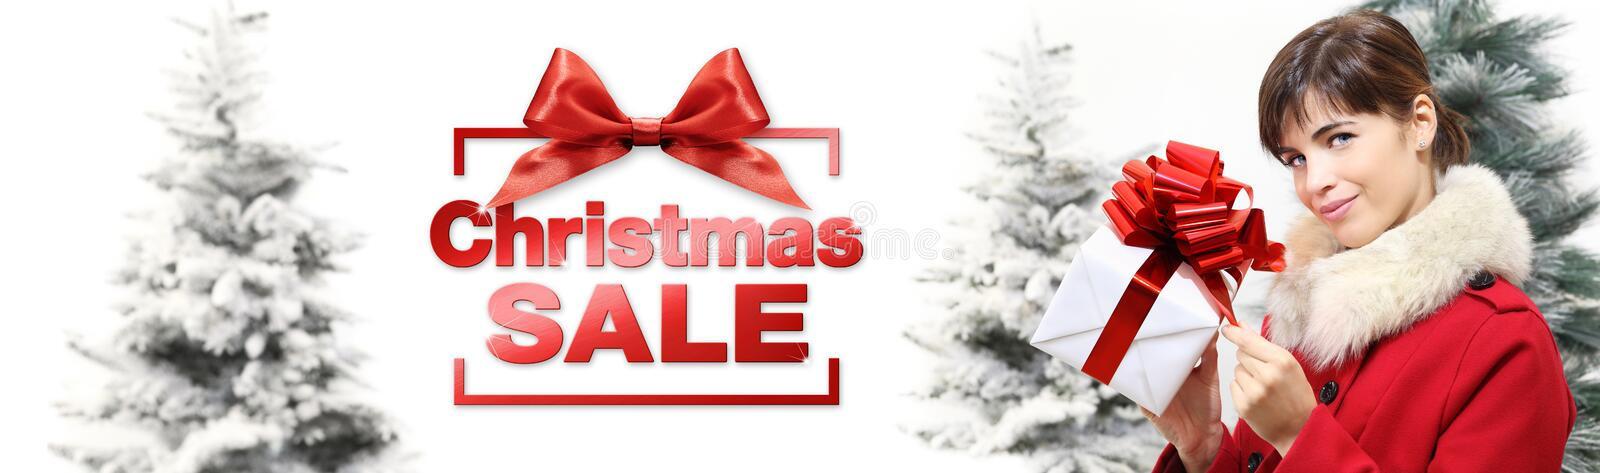 Christmas sale banner woman with gift box on white background wi. Th snowy trees stock photography